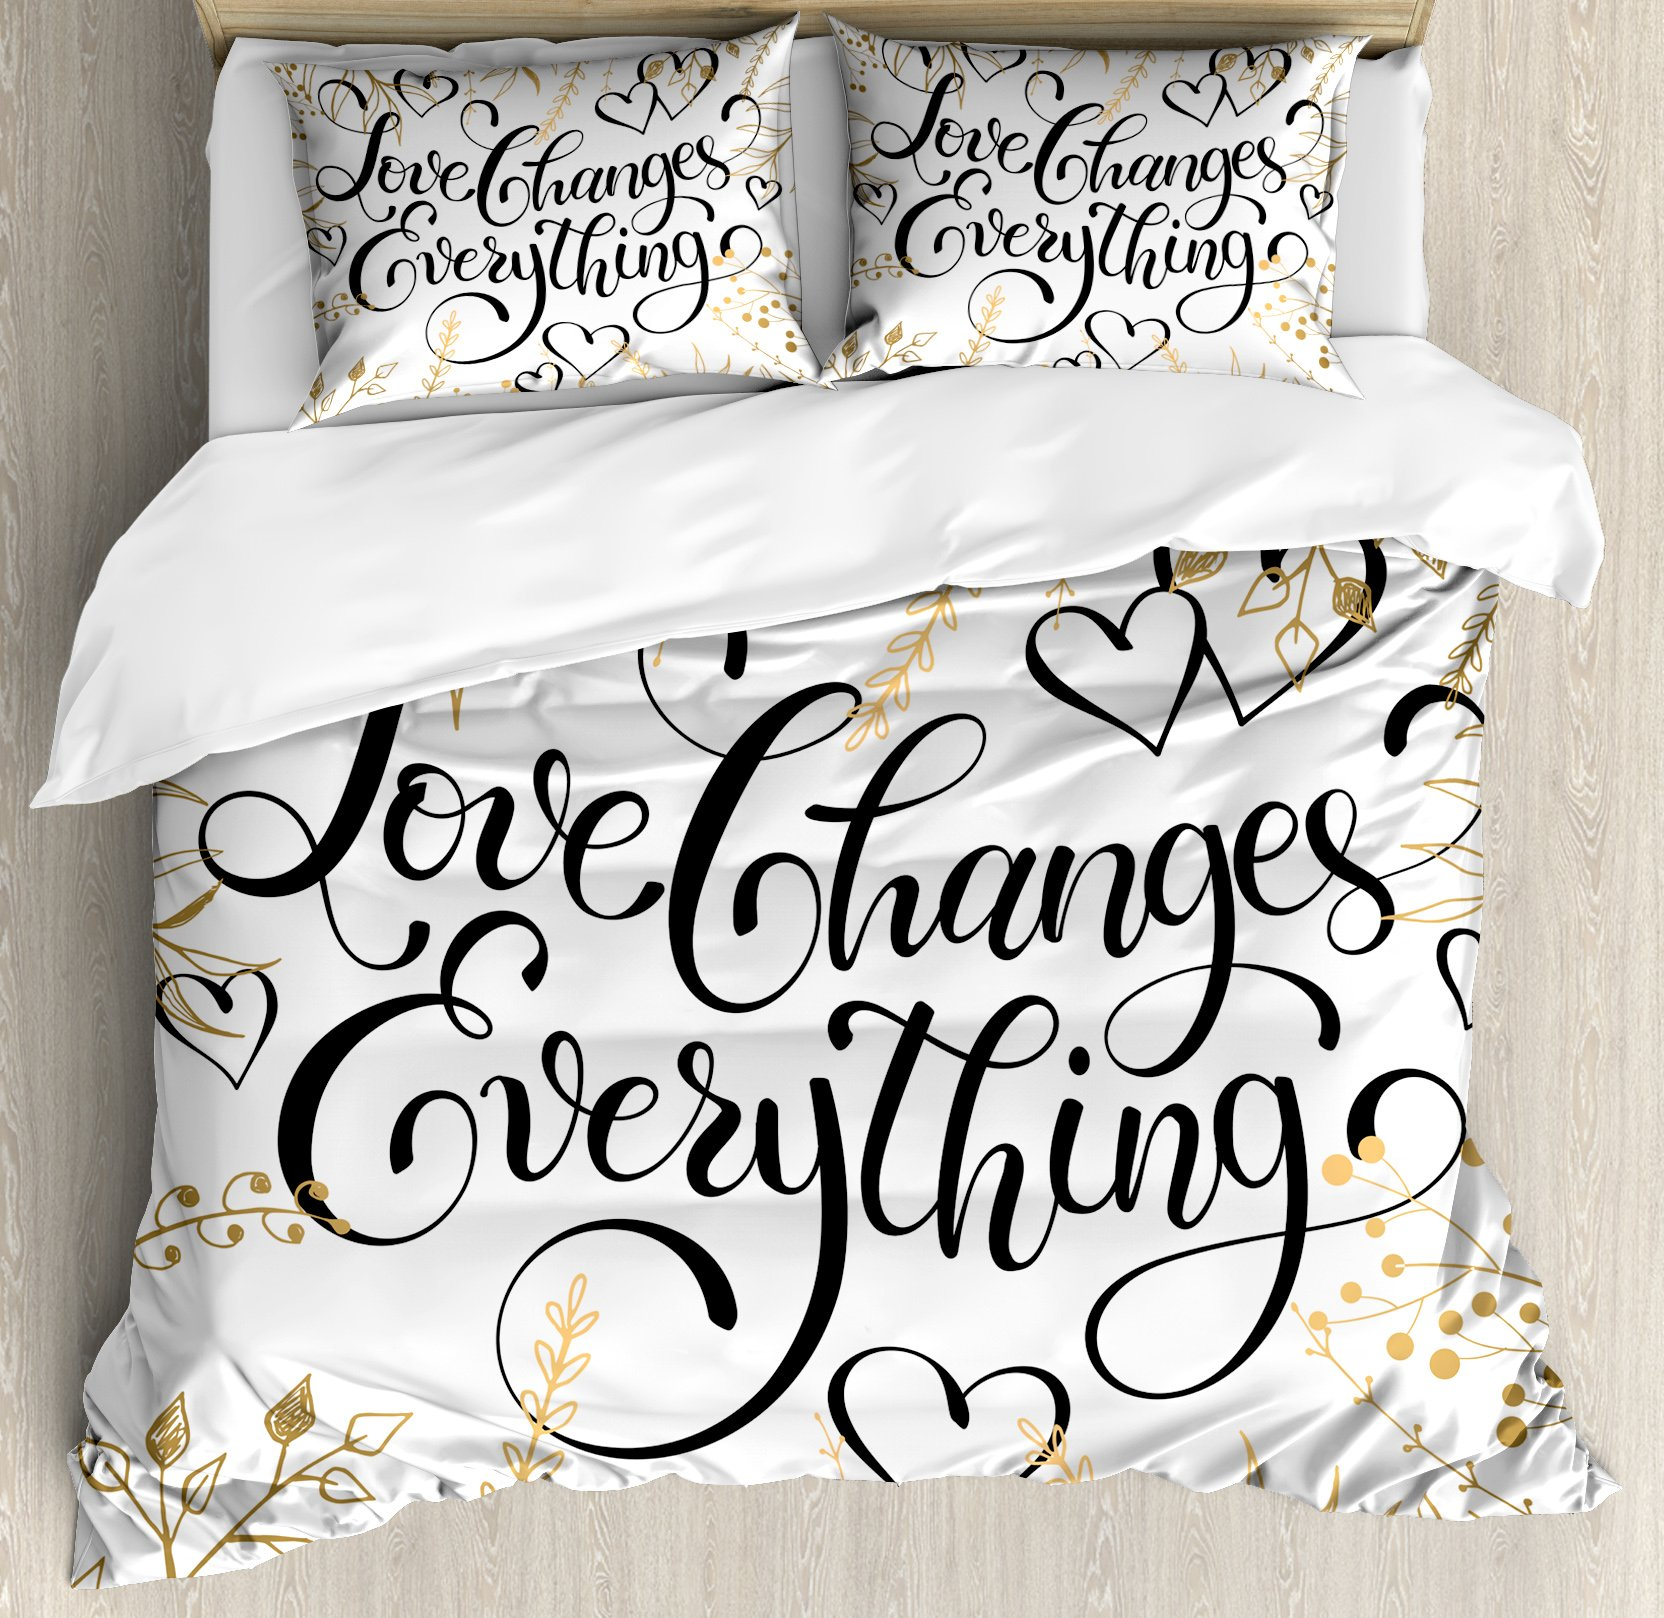 Ambesonne Romantic Duvet Cover Set King Size by, Golden Foliage Pattern Frame Style with Heart Shapes and Inspirational Quote, Decorative 3 Piece Bedding Set with 2 Pillow Shams, Gold White Black by Ambesonne (Image #1)